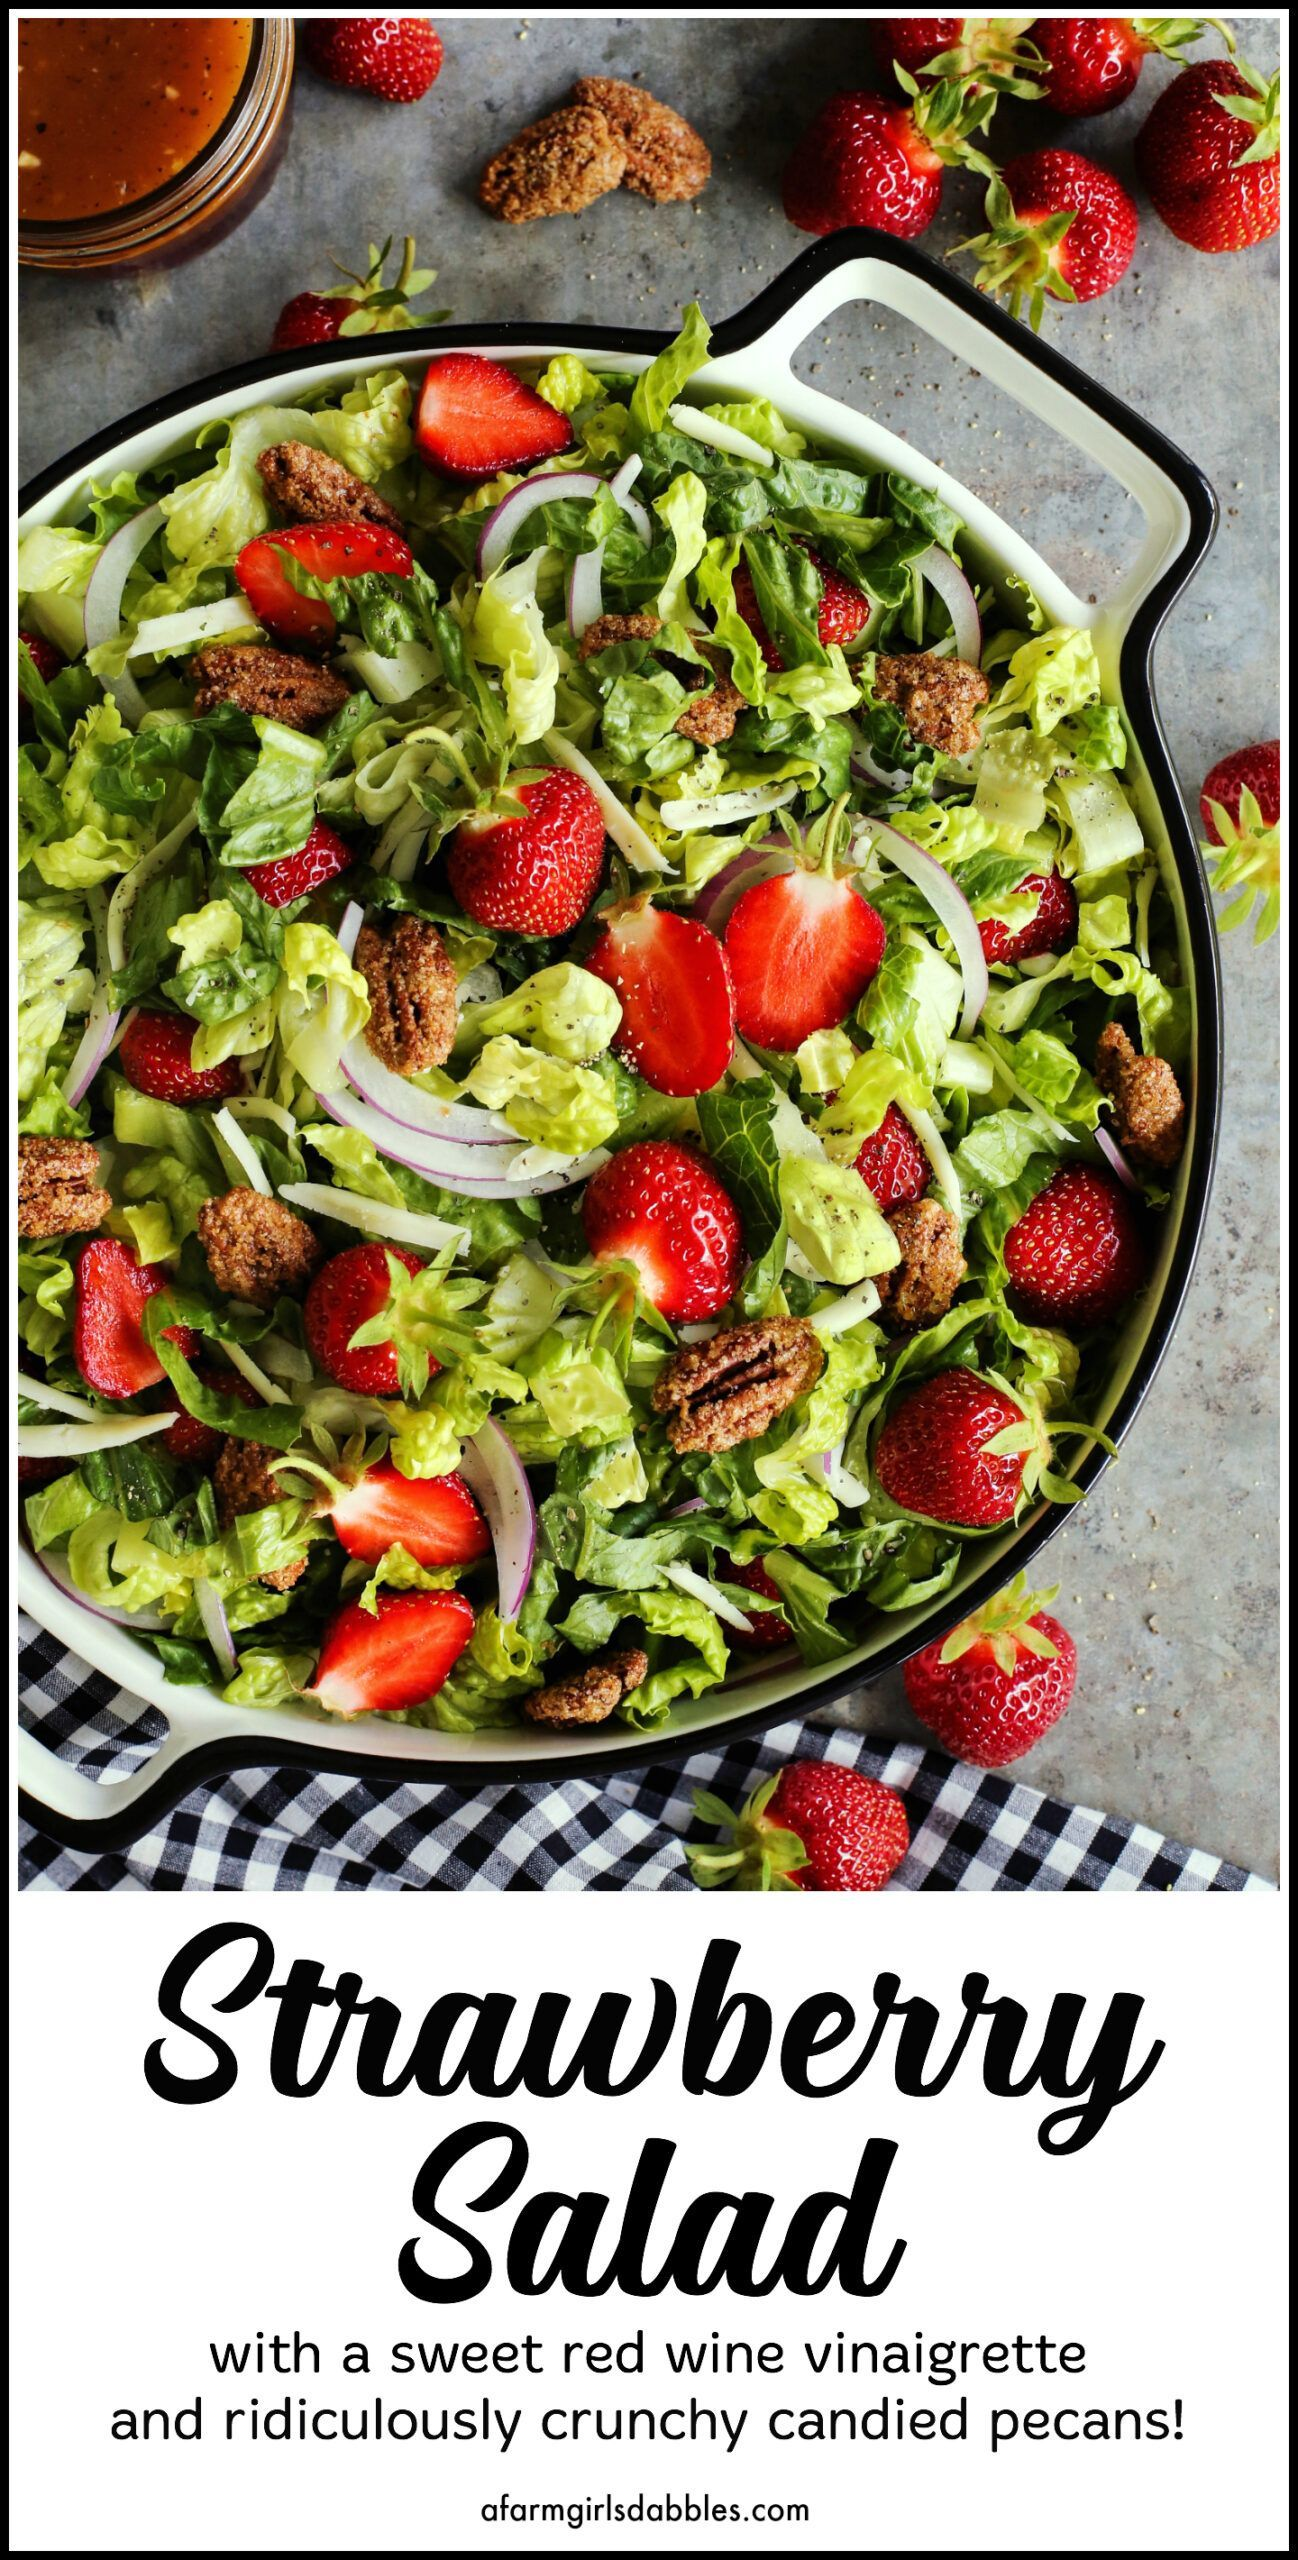 Strawberry Salad With Red Wine Vinaigrette An Easy Summertime Salad Recipe Strawberry Salad Yummy Salad Recipes Strawberry Salad Recipe [ 2560 x 1298 Pixel ]